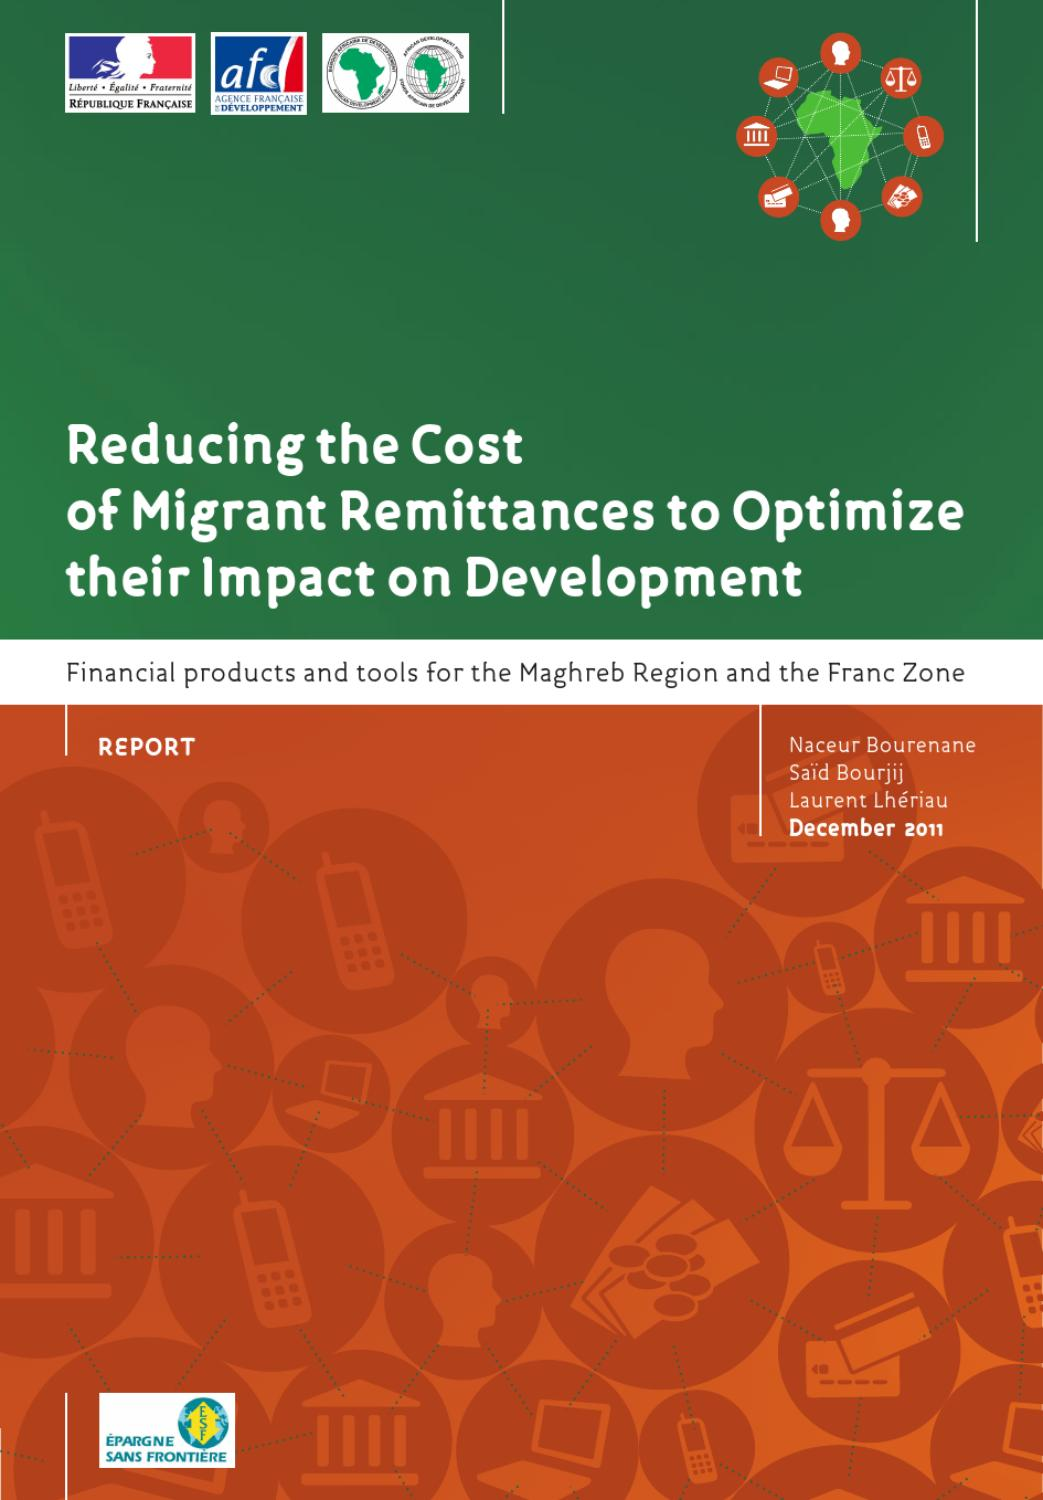 Reducing the Cost of Migrant Remittances to Optimize their